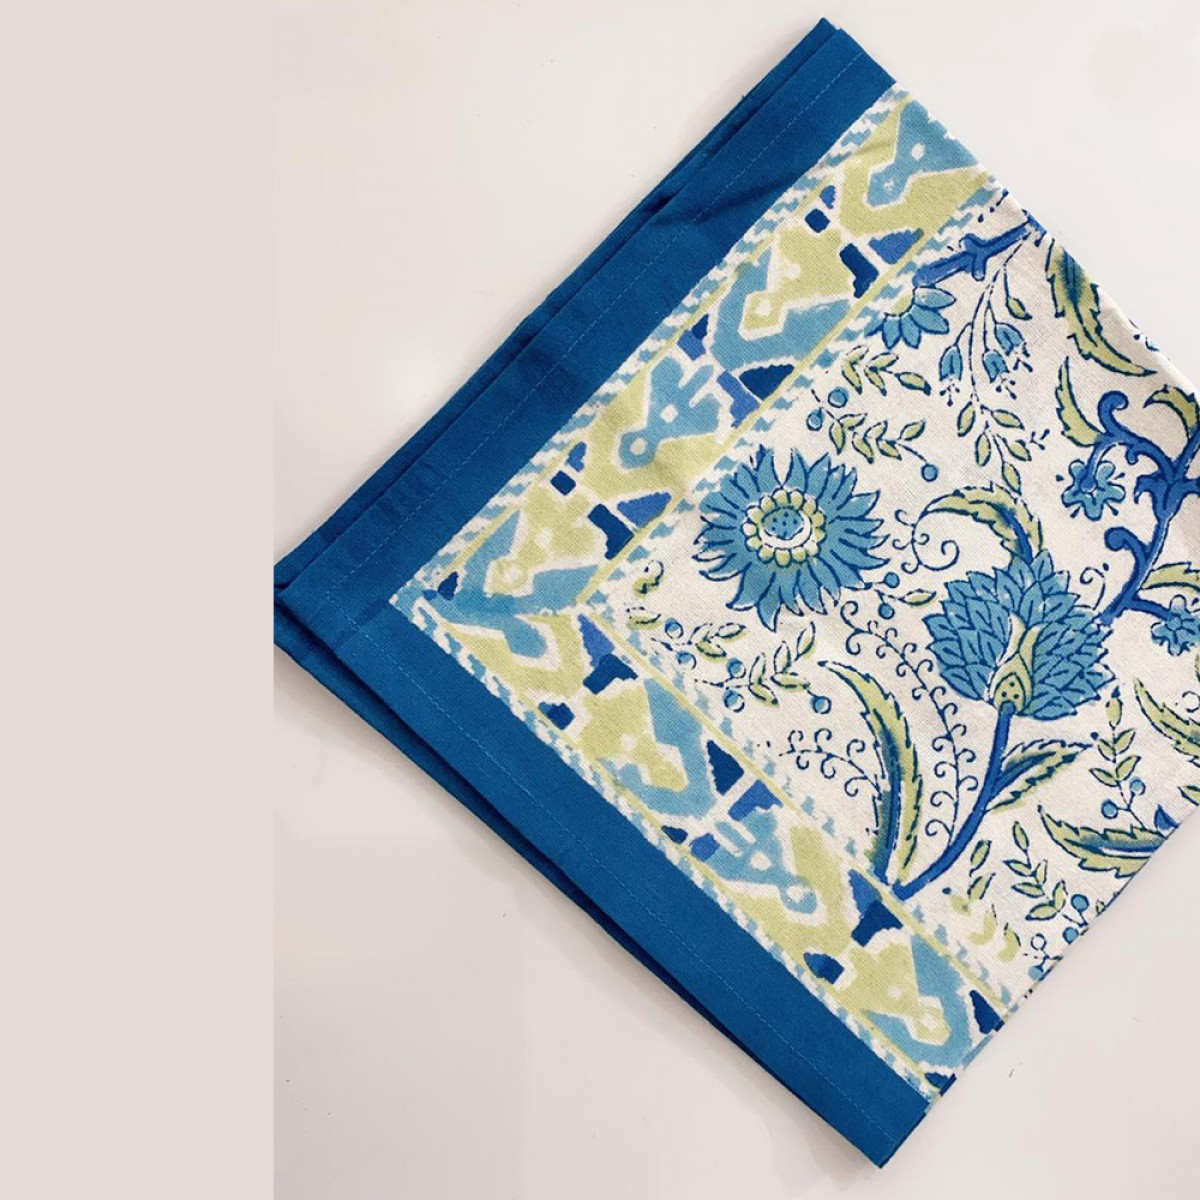 Cotton Printed Napkin - Blue (Set of 6)